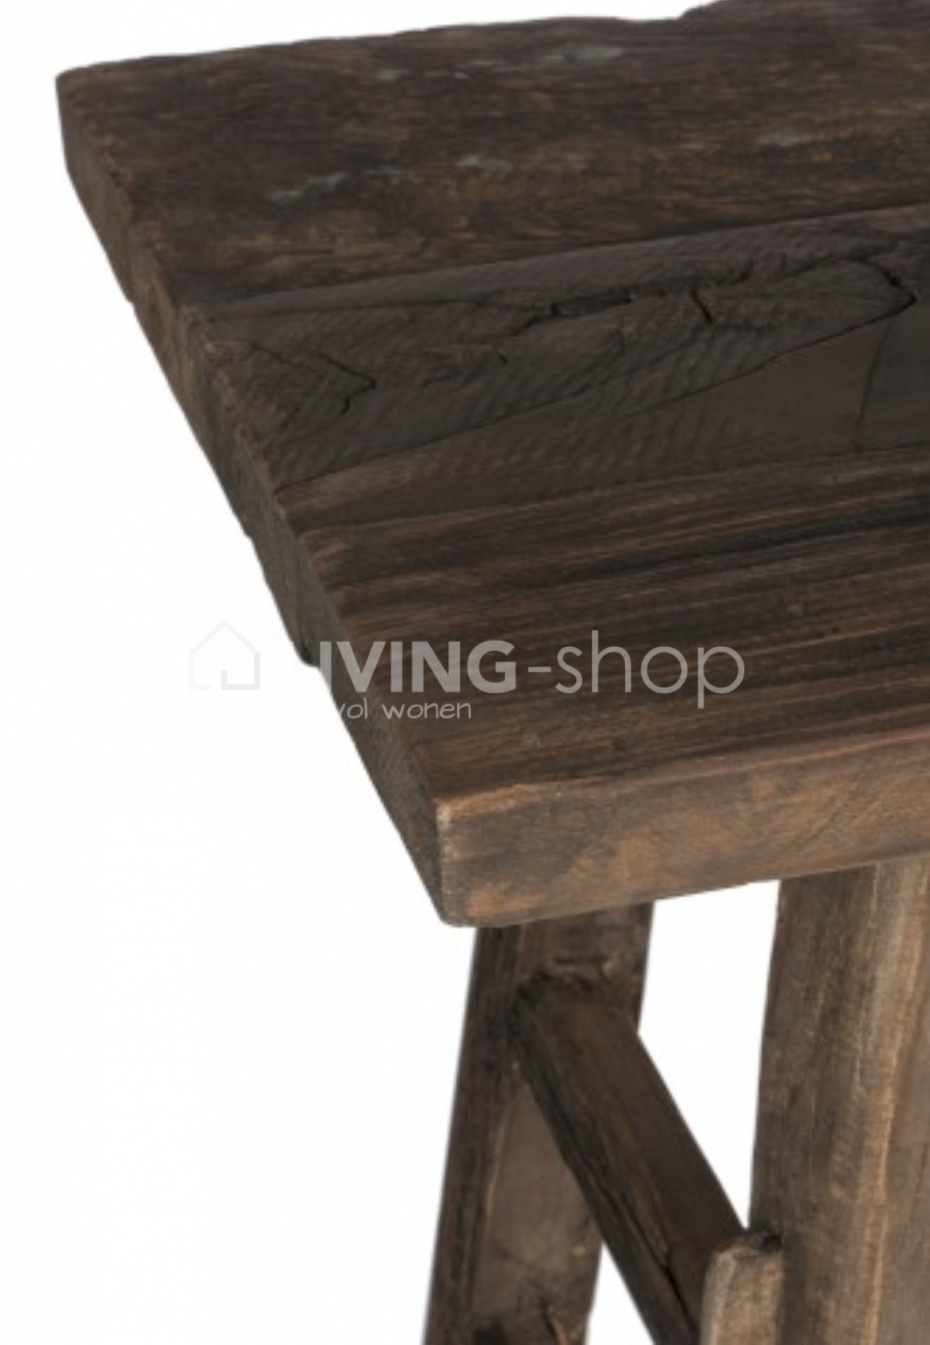 Enjoyable J Line Country Style Side Tables 2 Levels Living Shop Dailytribune Chair Design For Home Dailytribuneorg